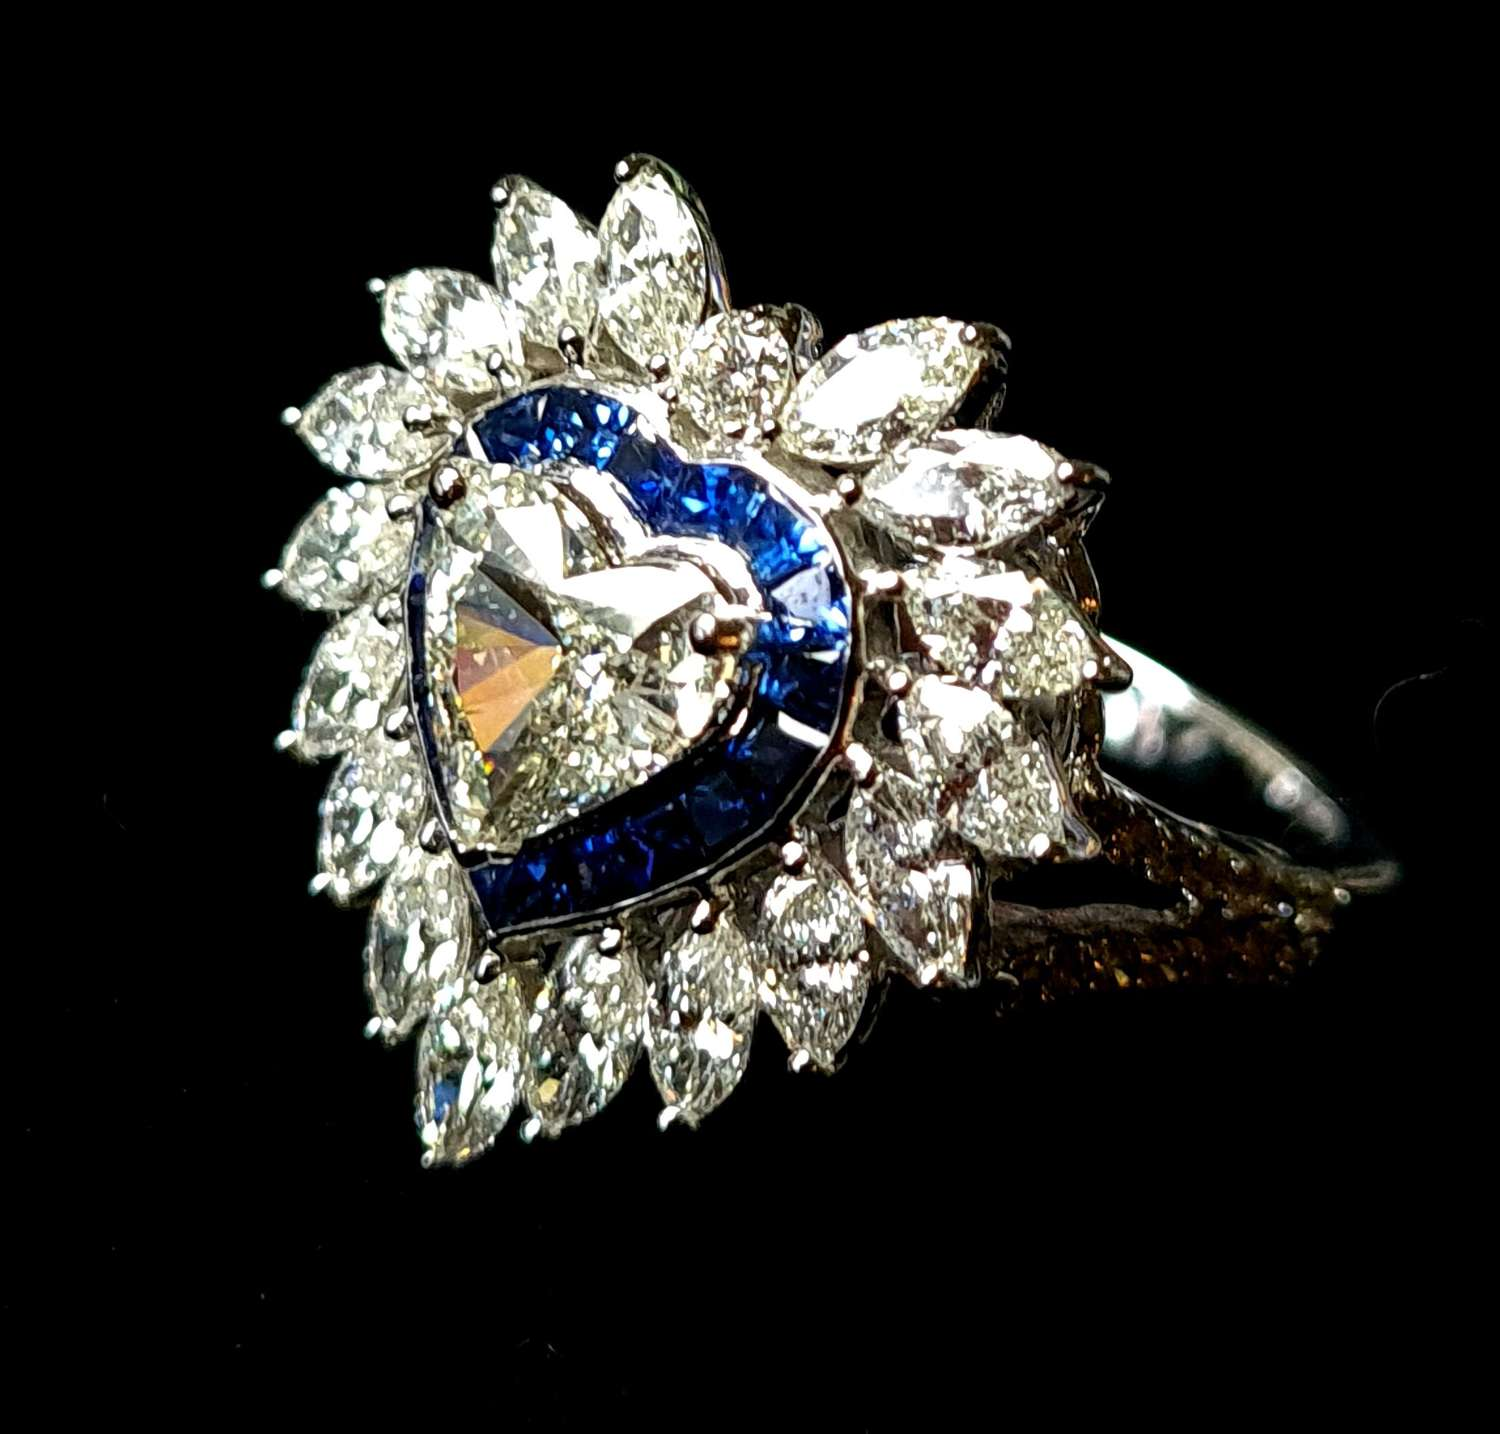 Heart Shaped Diamond and Sapphire Ring